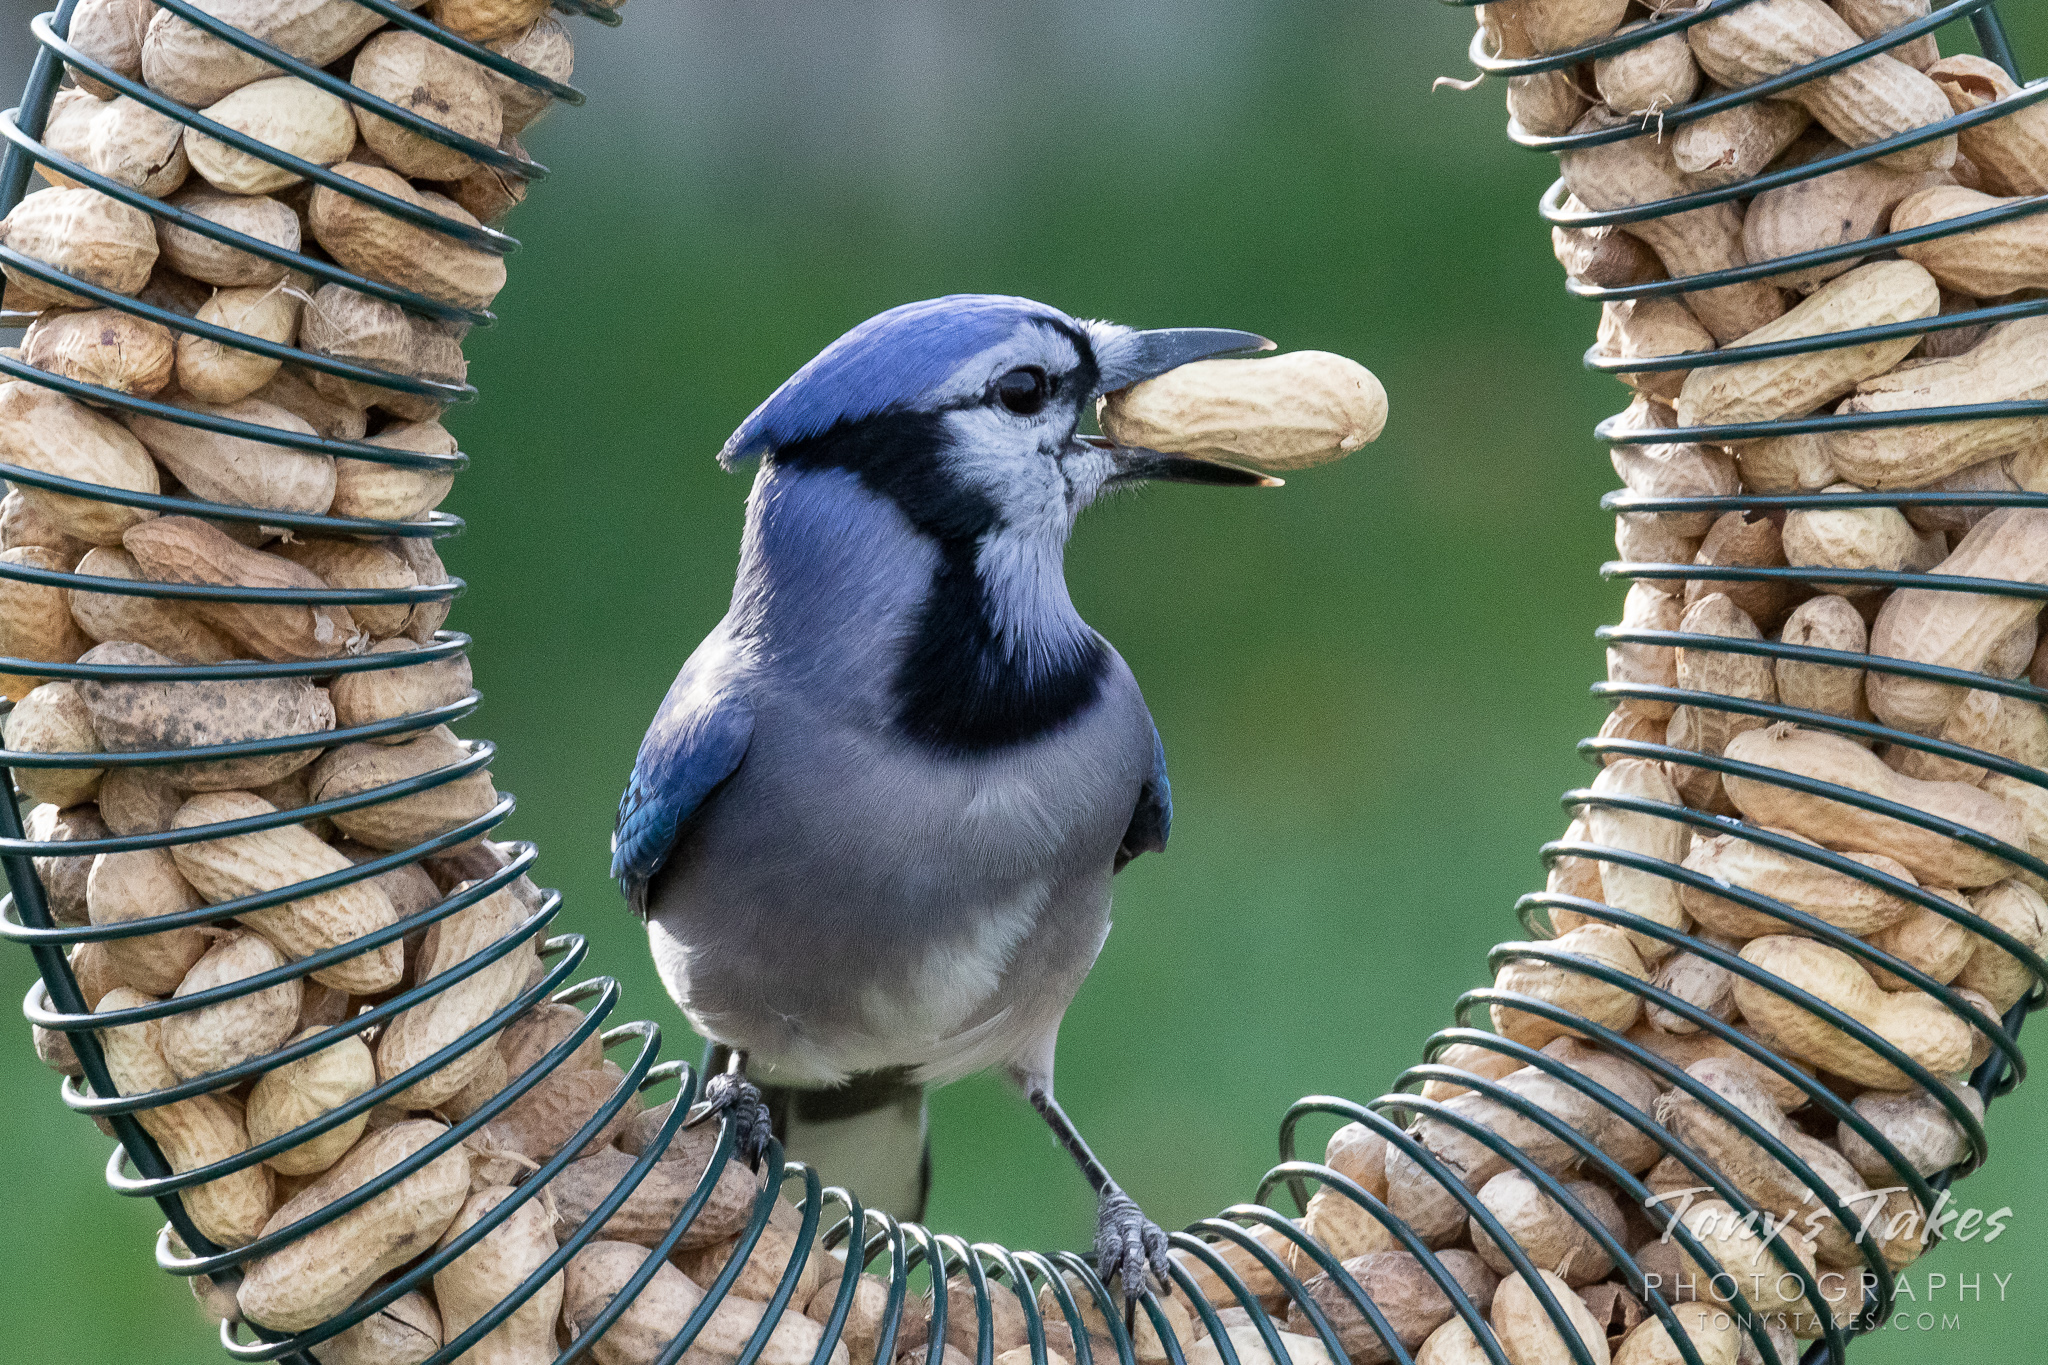 Backyard Blue Jay grabs a snack